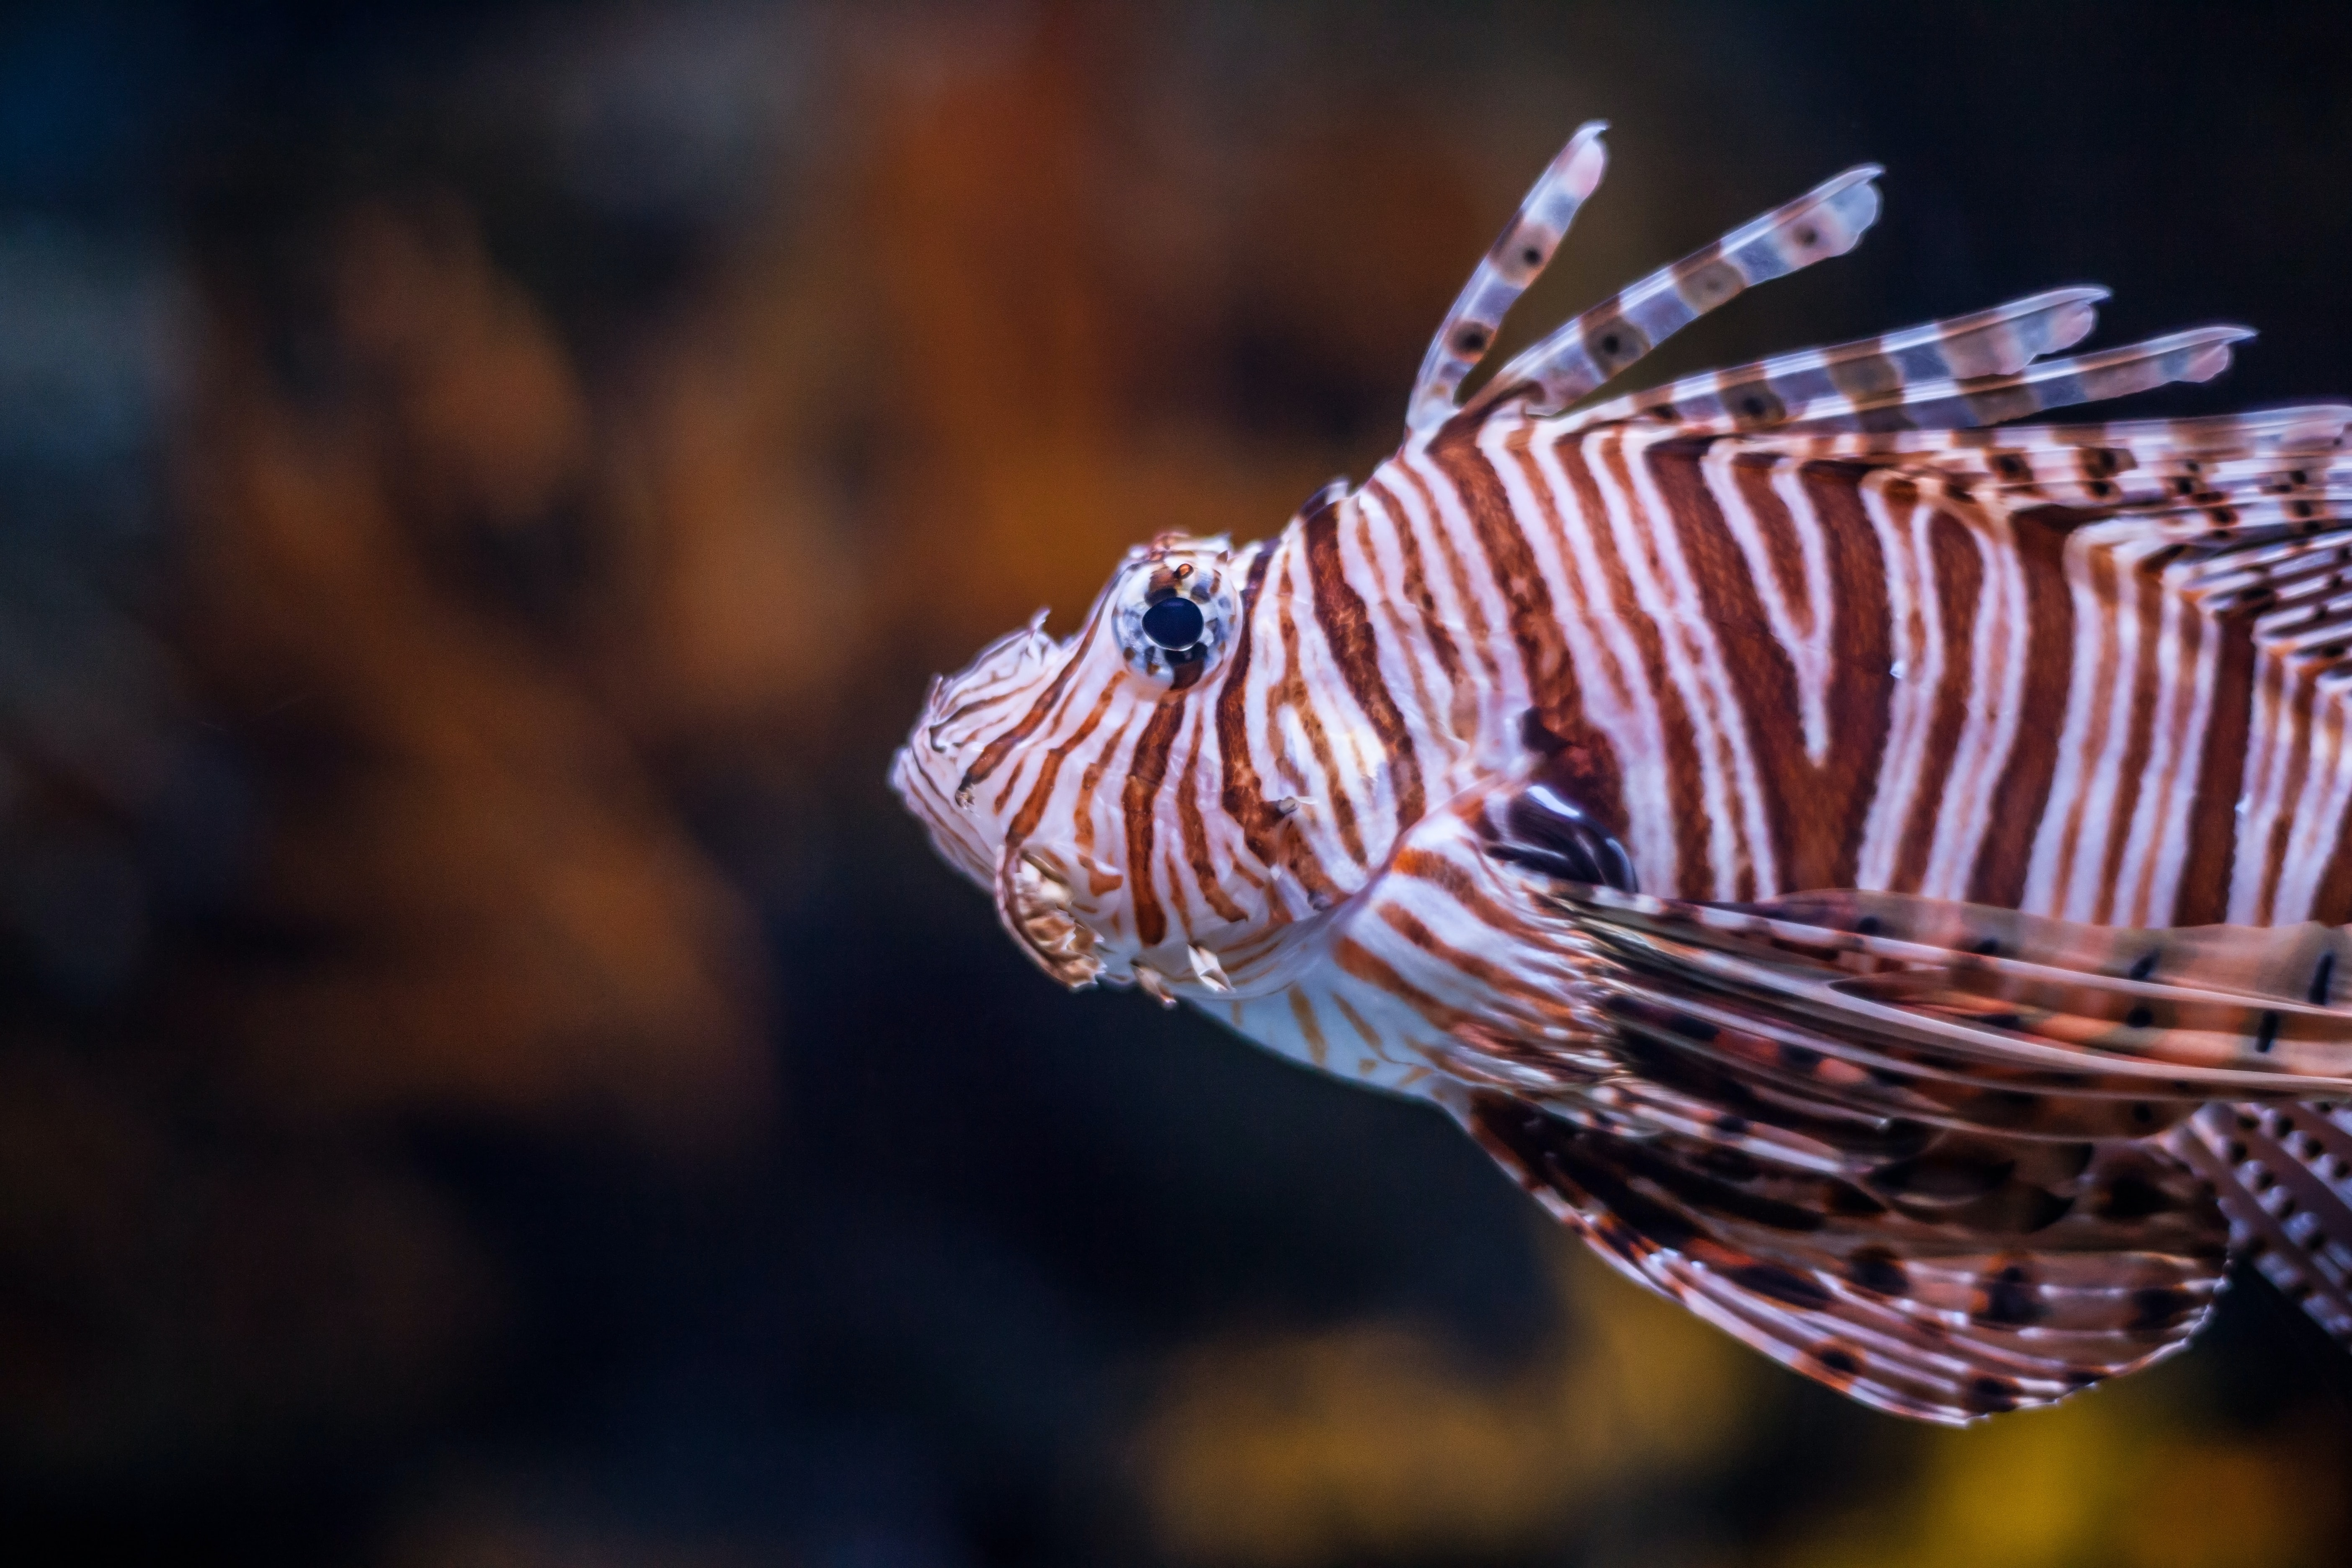 close-up photo of white and brown striped fish